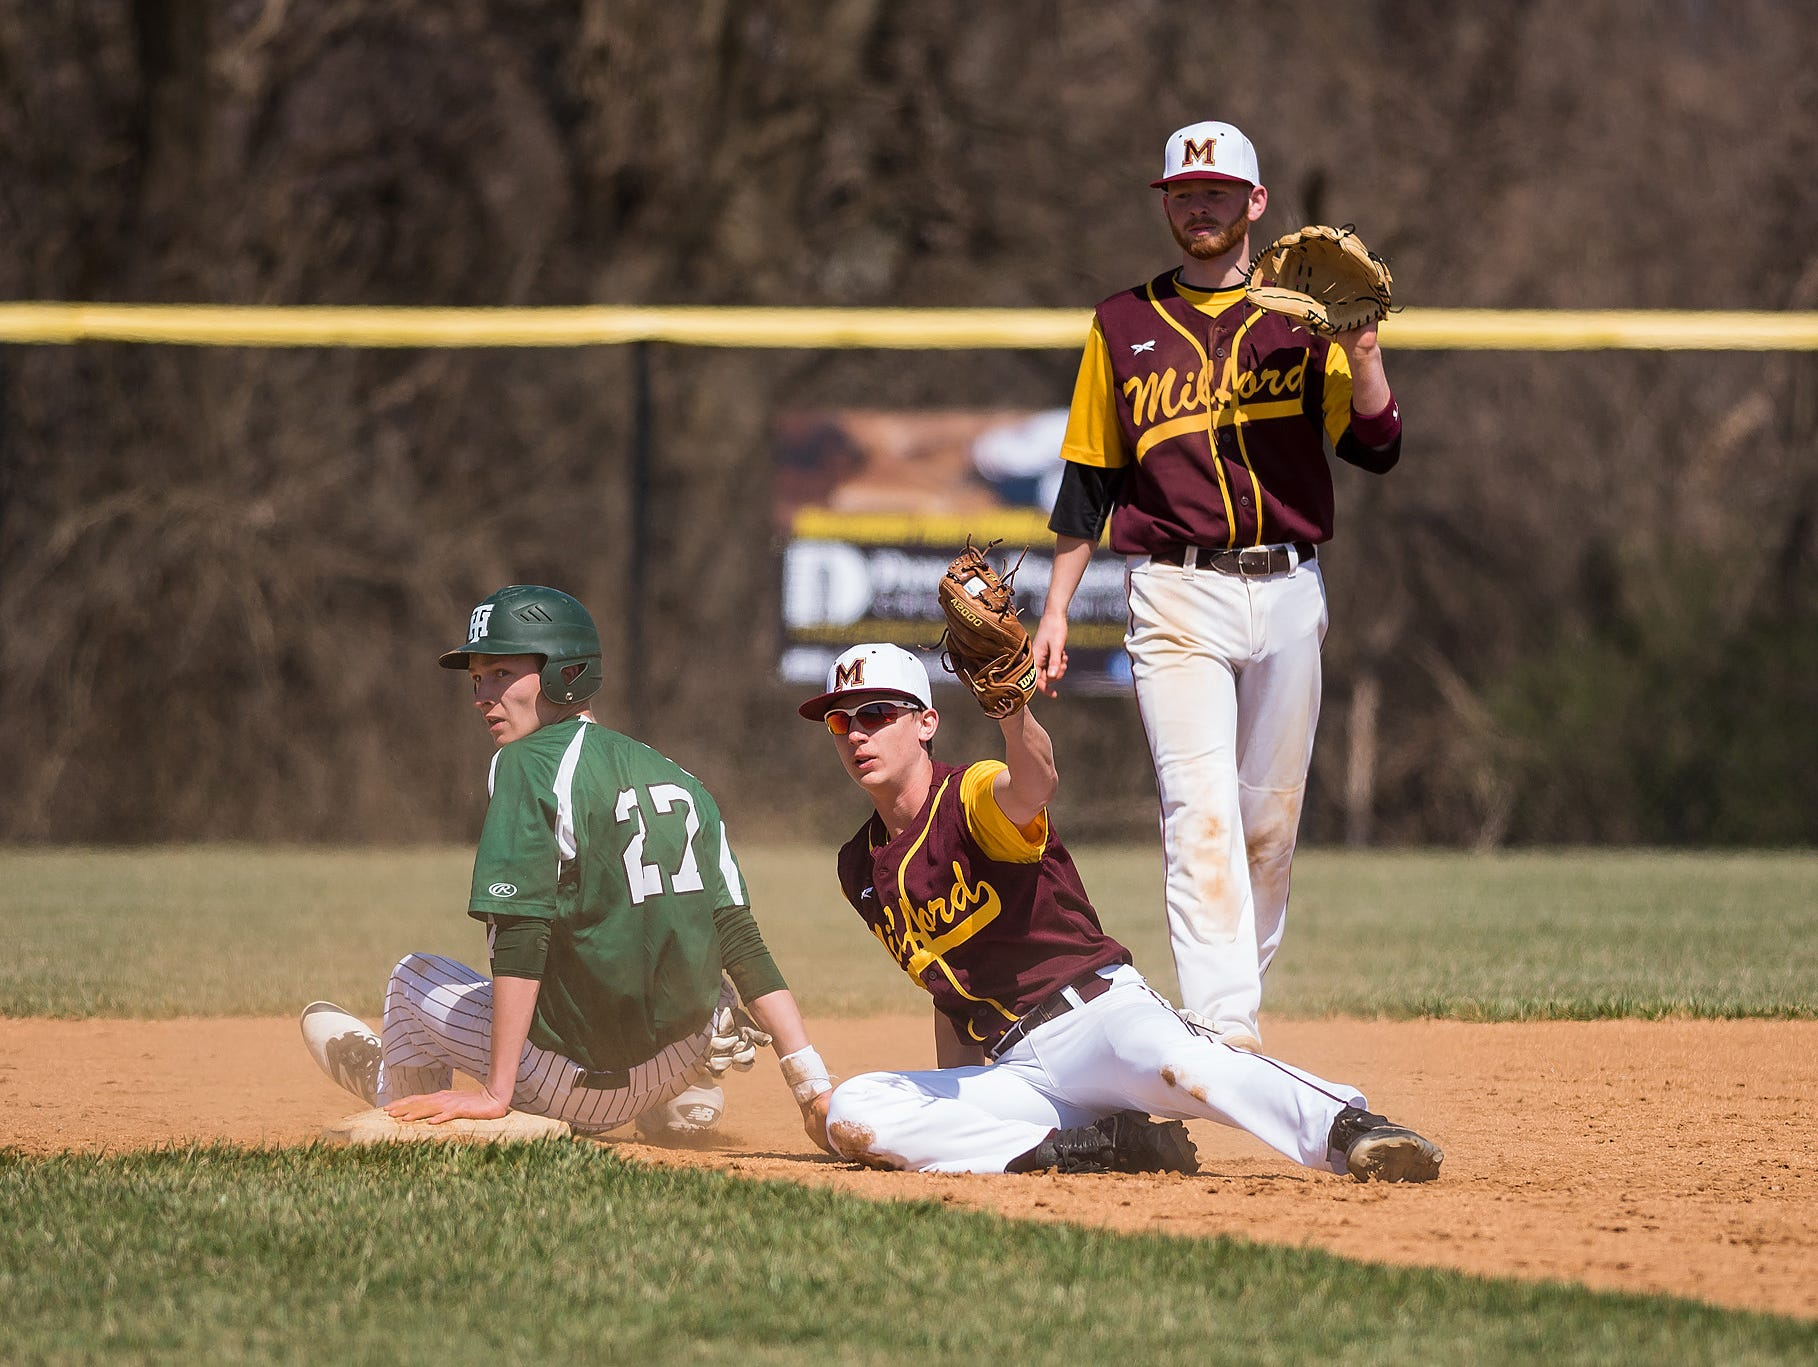 William Kimmel of Milford tags out Bo Anderson at second base in a Tower Hill vs Milford baseball game at Milford High School on Saturday.